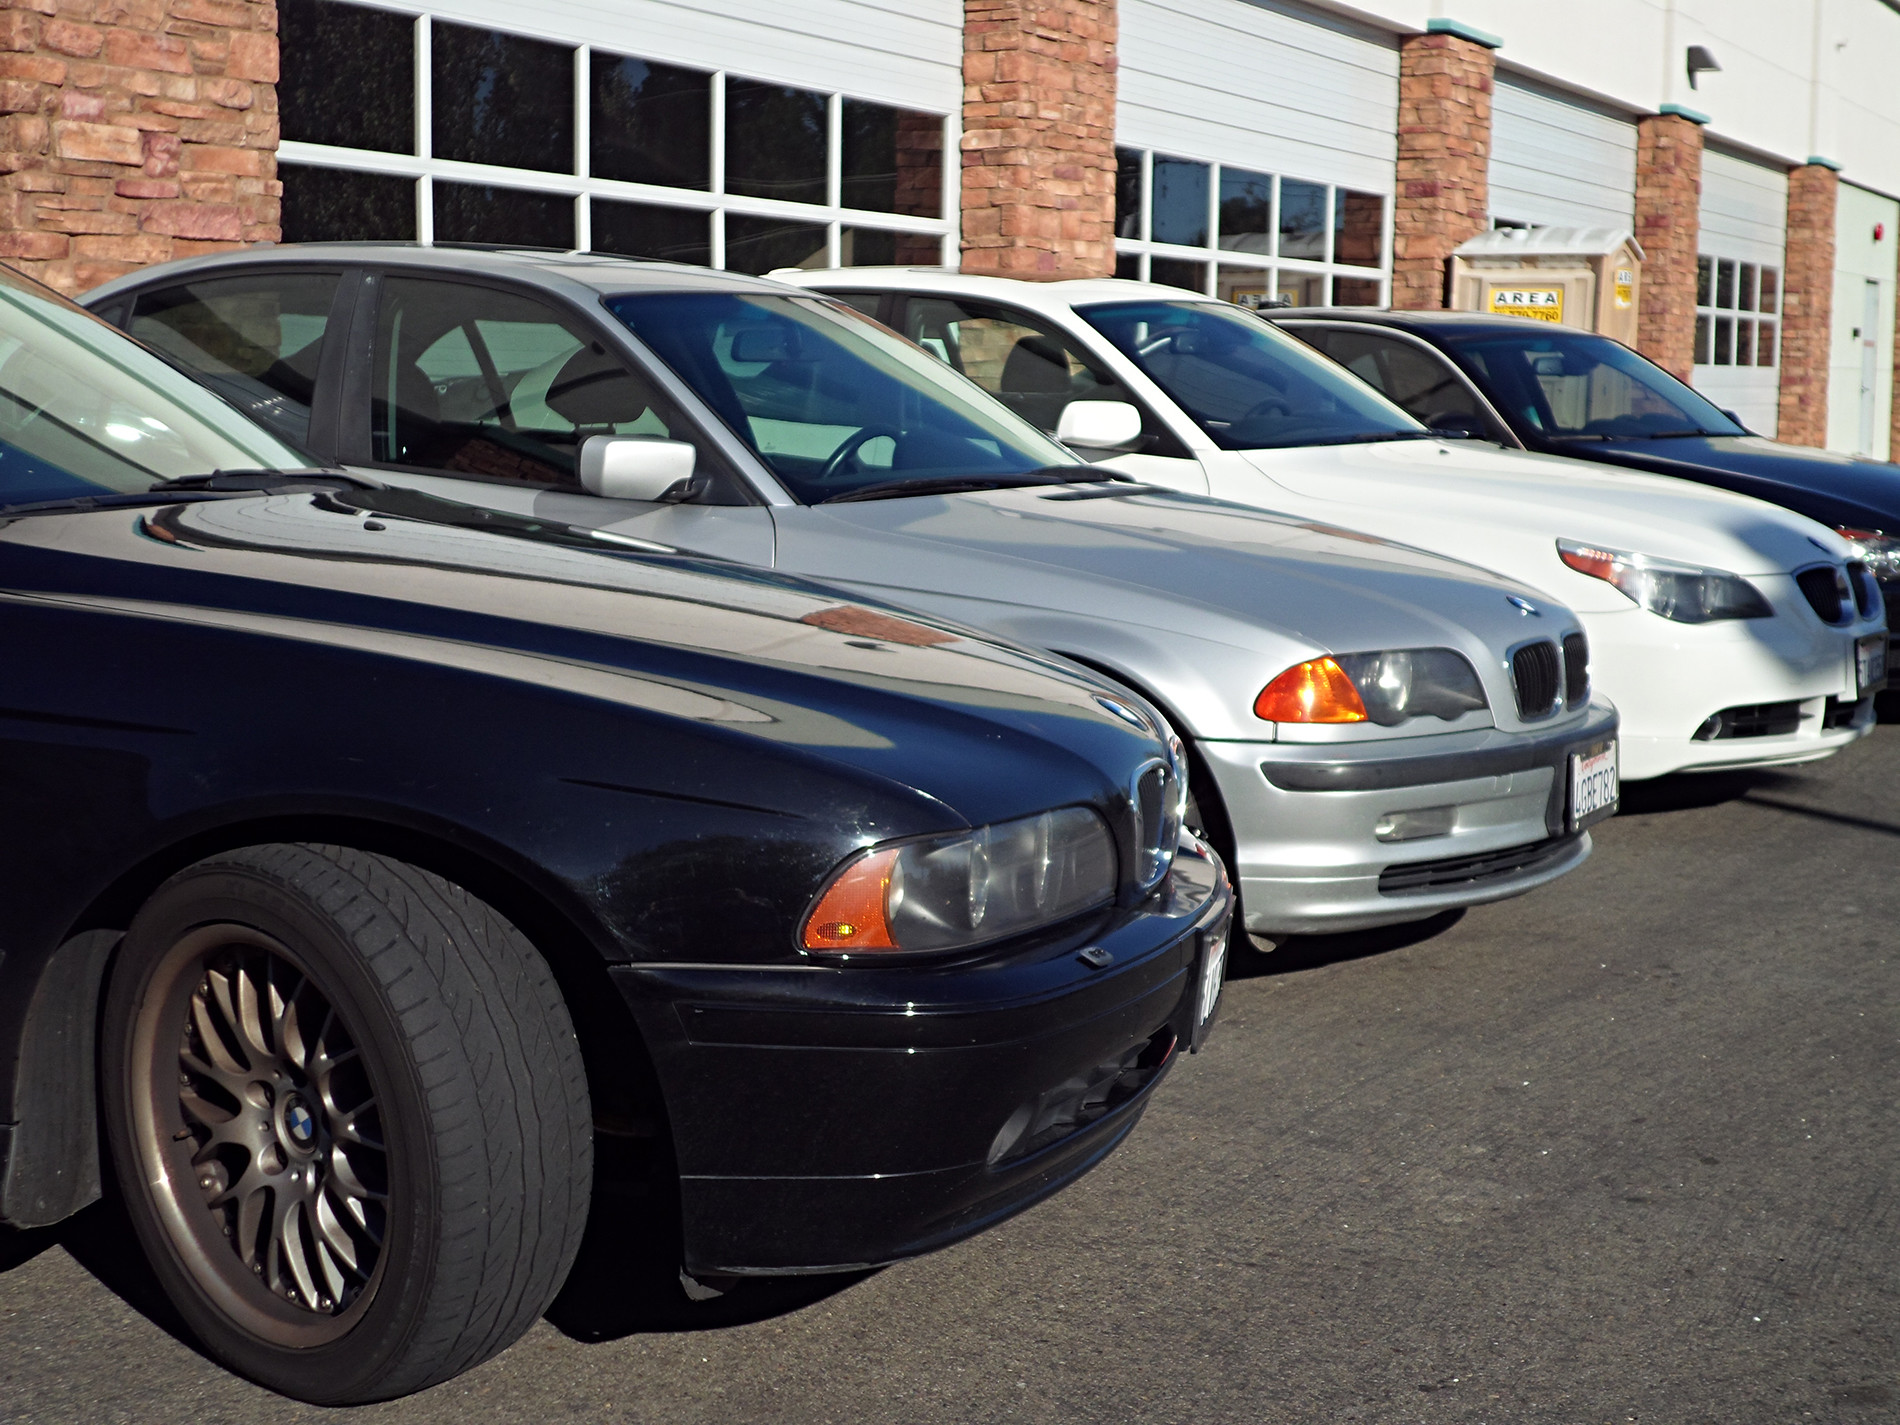 German car service center in Rocklin